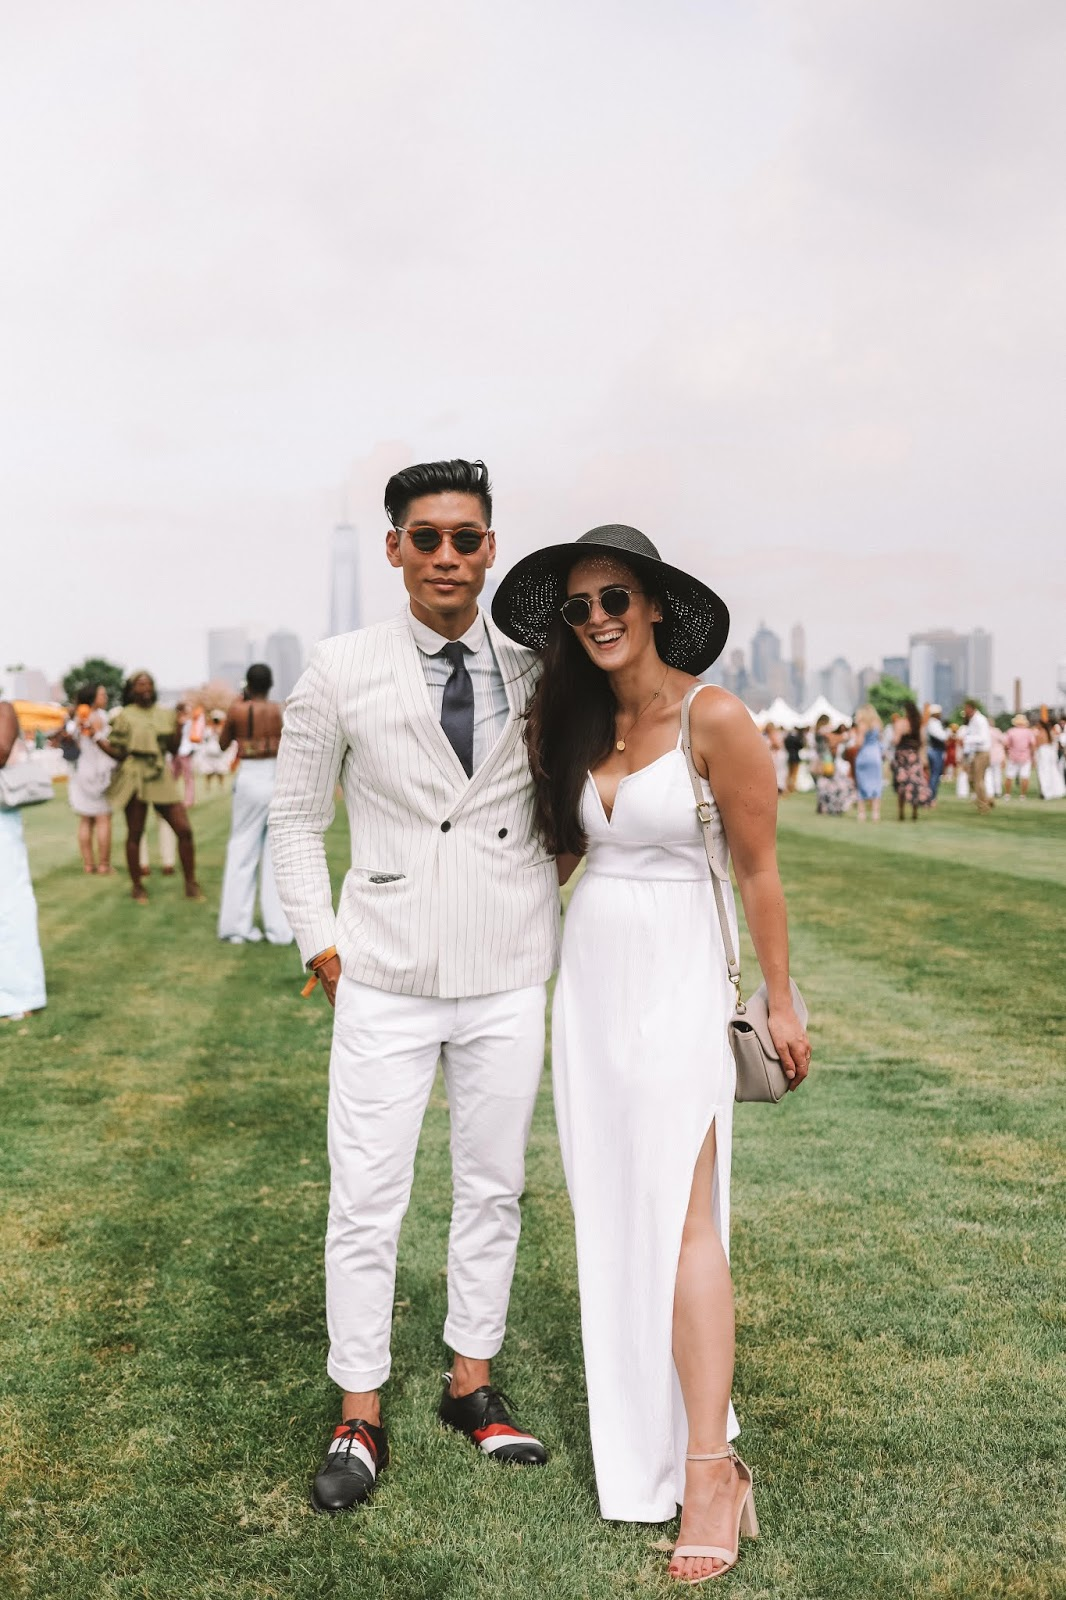 Couple's All-White Summer Outfit